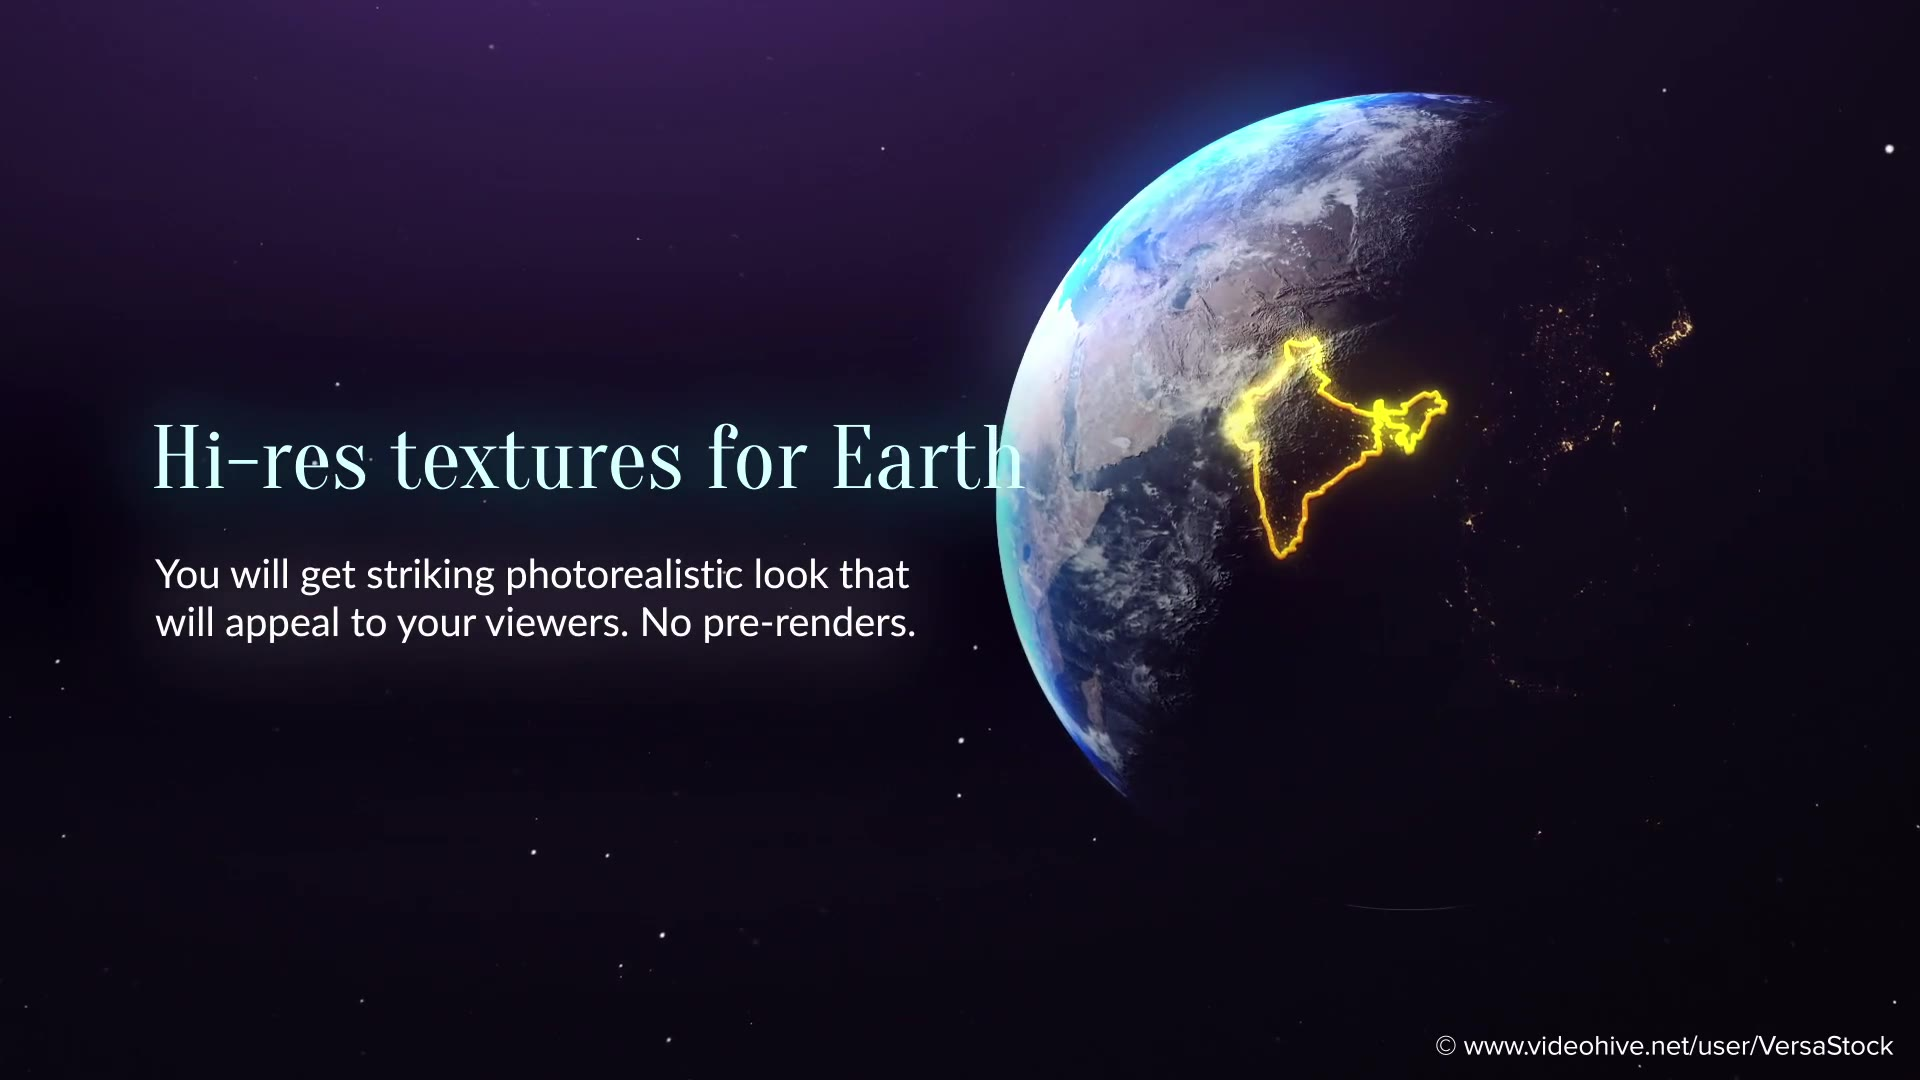 Global Economics From Space Infographics Videohive 25031384 After Effects Image 3